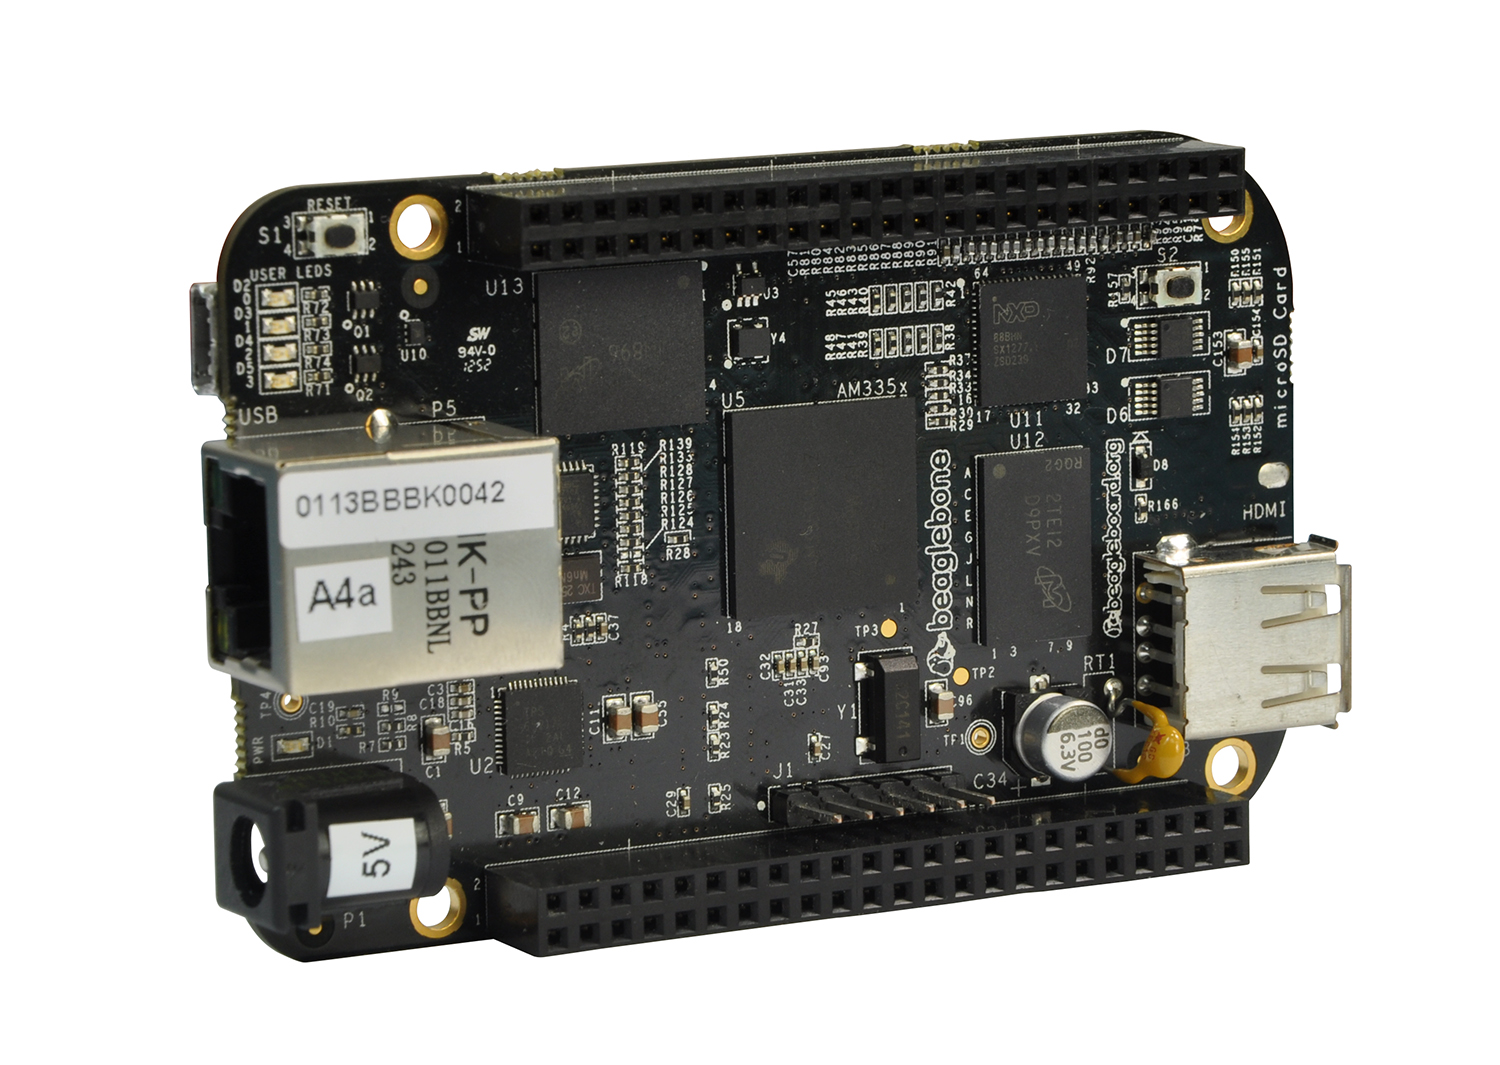 Beagleboard - The element14 BeagleBone Black is a full featured, internet enabled development platform that utilises the low cost Sitara AM3358 ARM Cortex-A8 processor from Texas Instruments and runs a variety of OS.